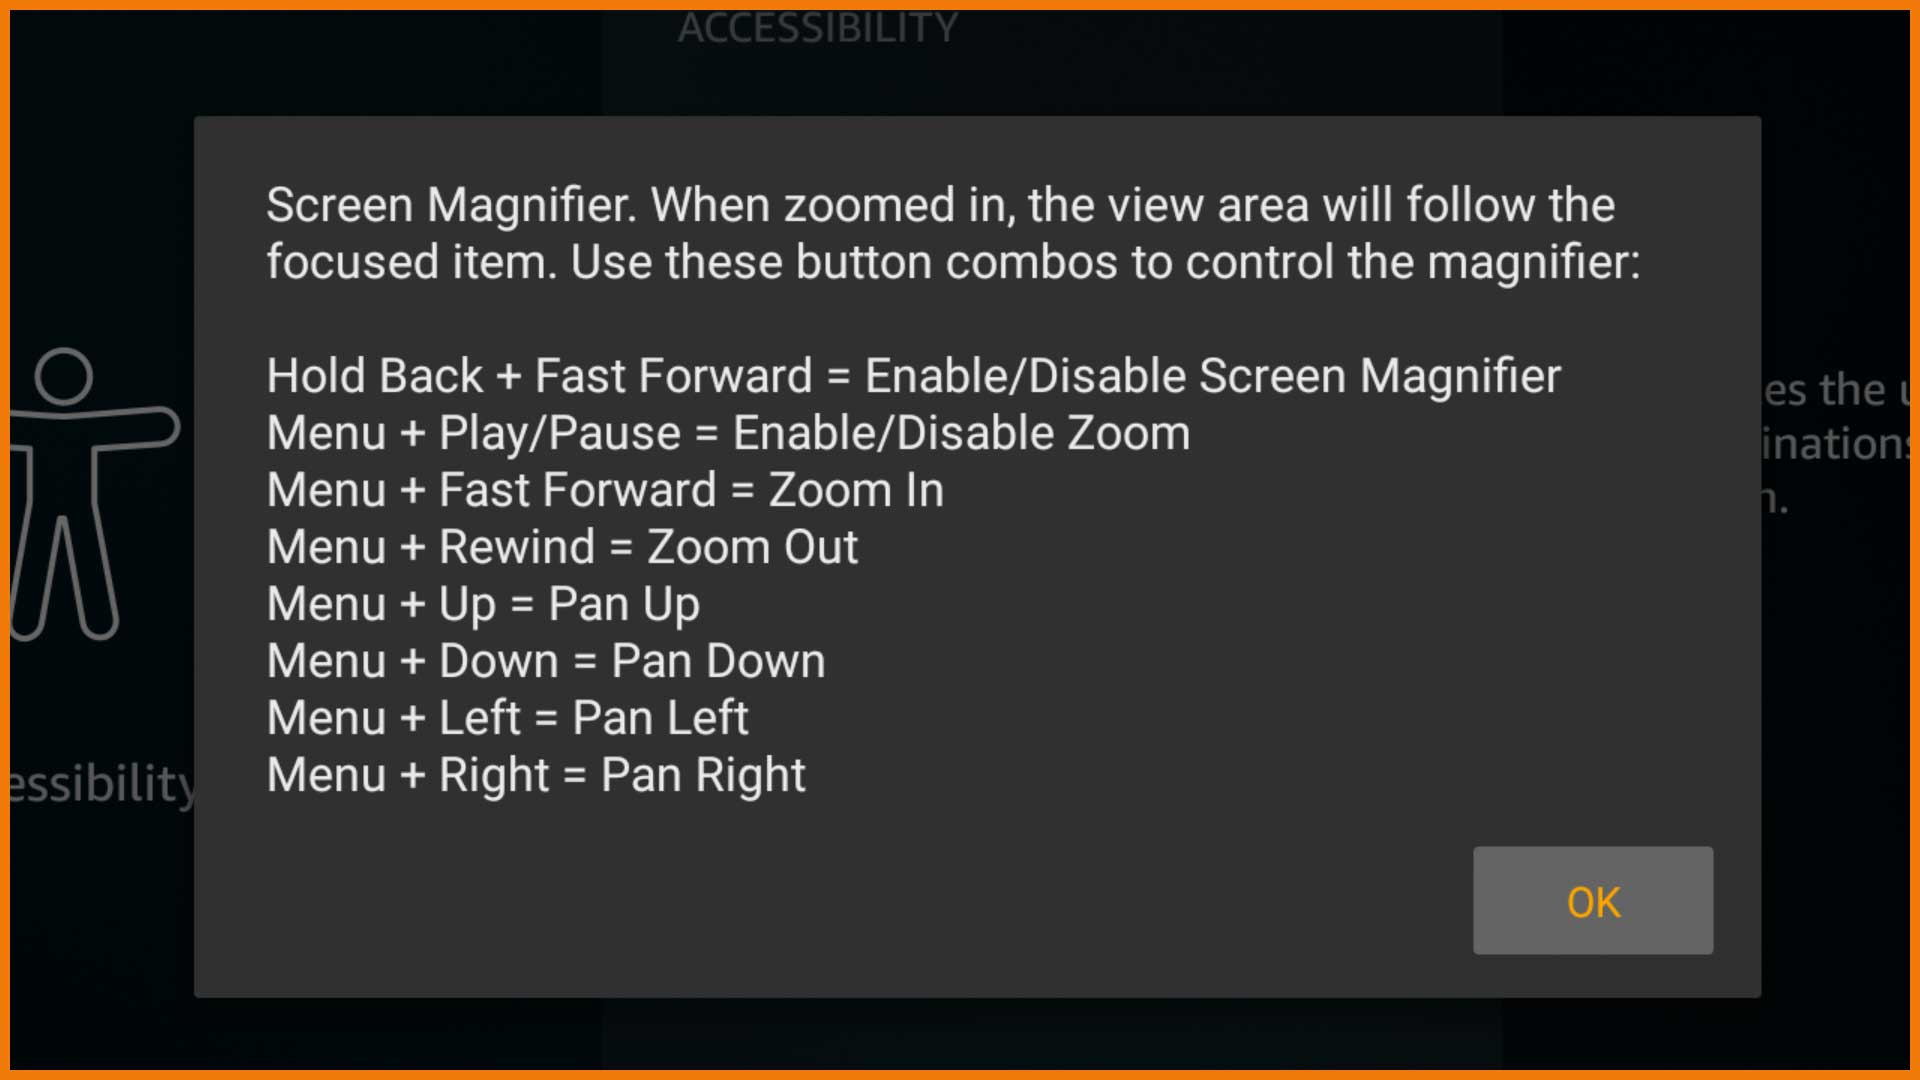 How To Fix The Amazon Fire Tv Or Fire Tv Stick If The Screen Display